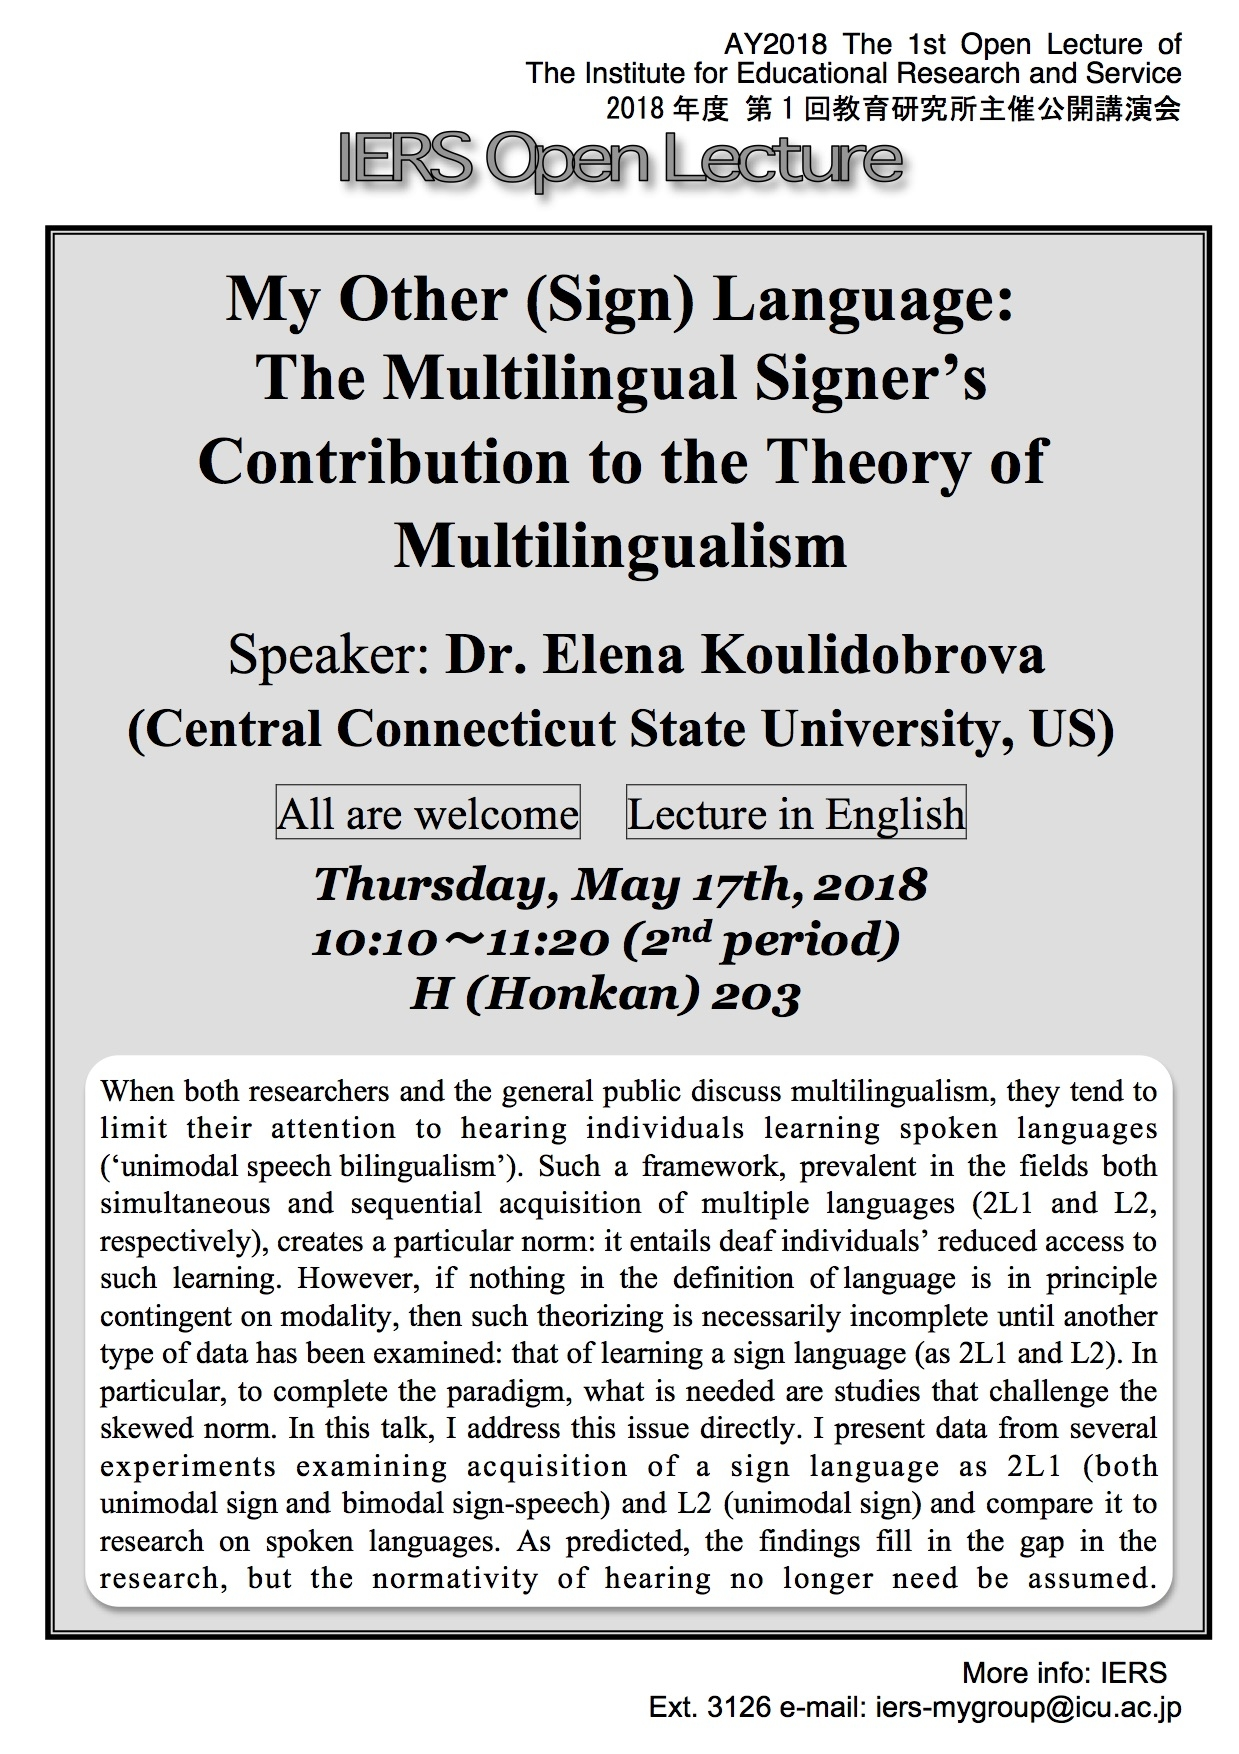 1st Elena Koulidobrova (Dr.) (Central Connect State University) Poster.doc.edited.jpg